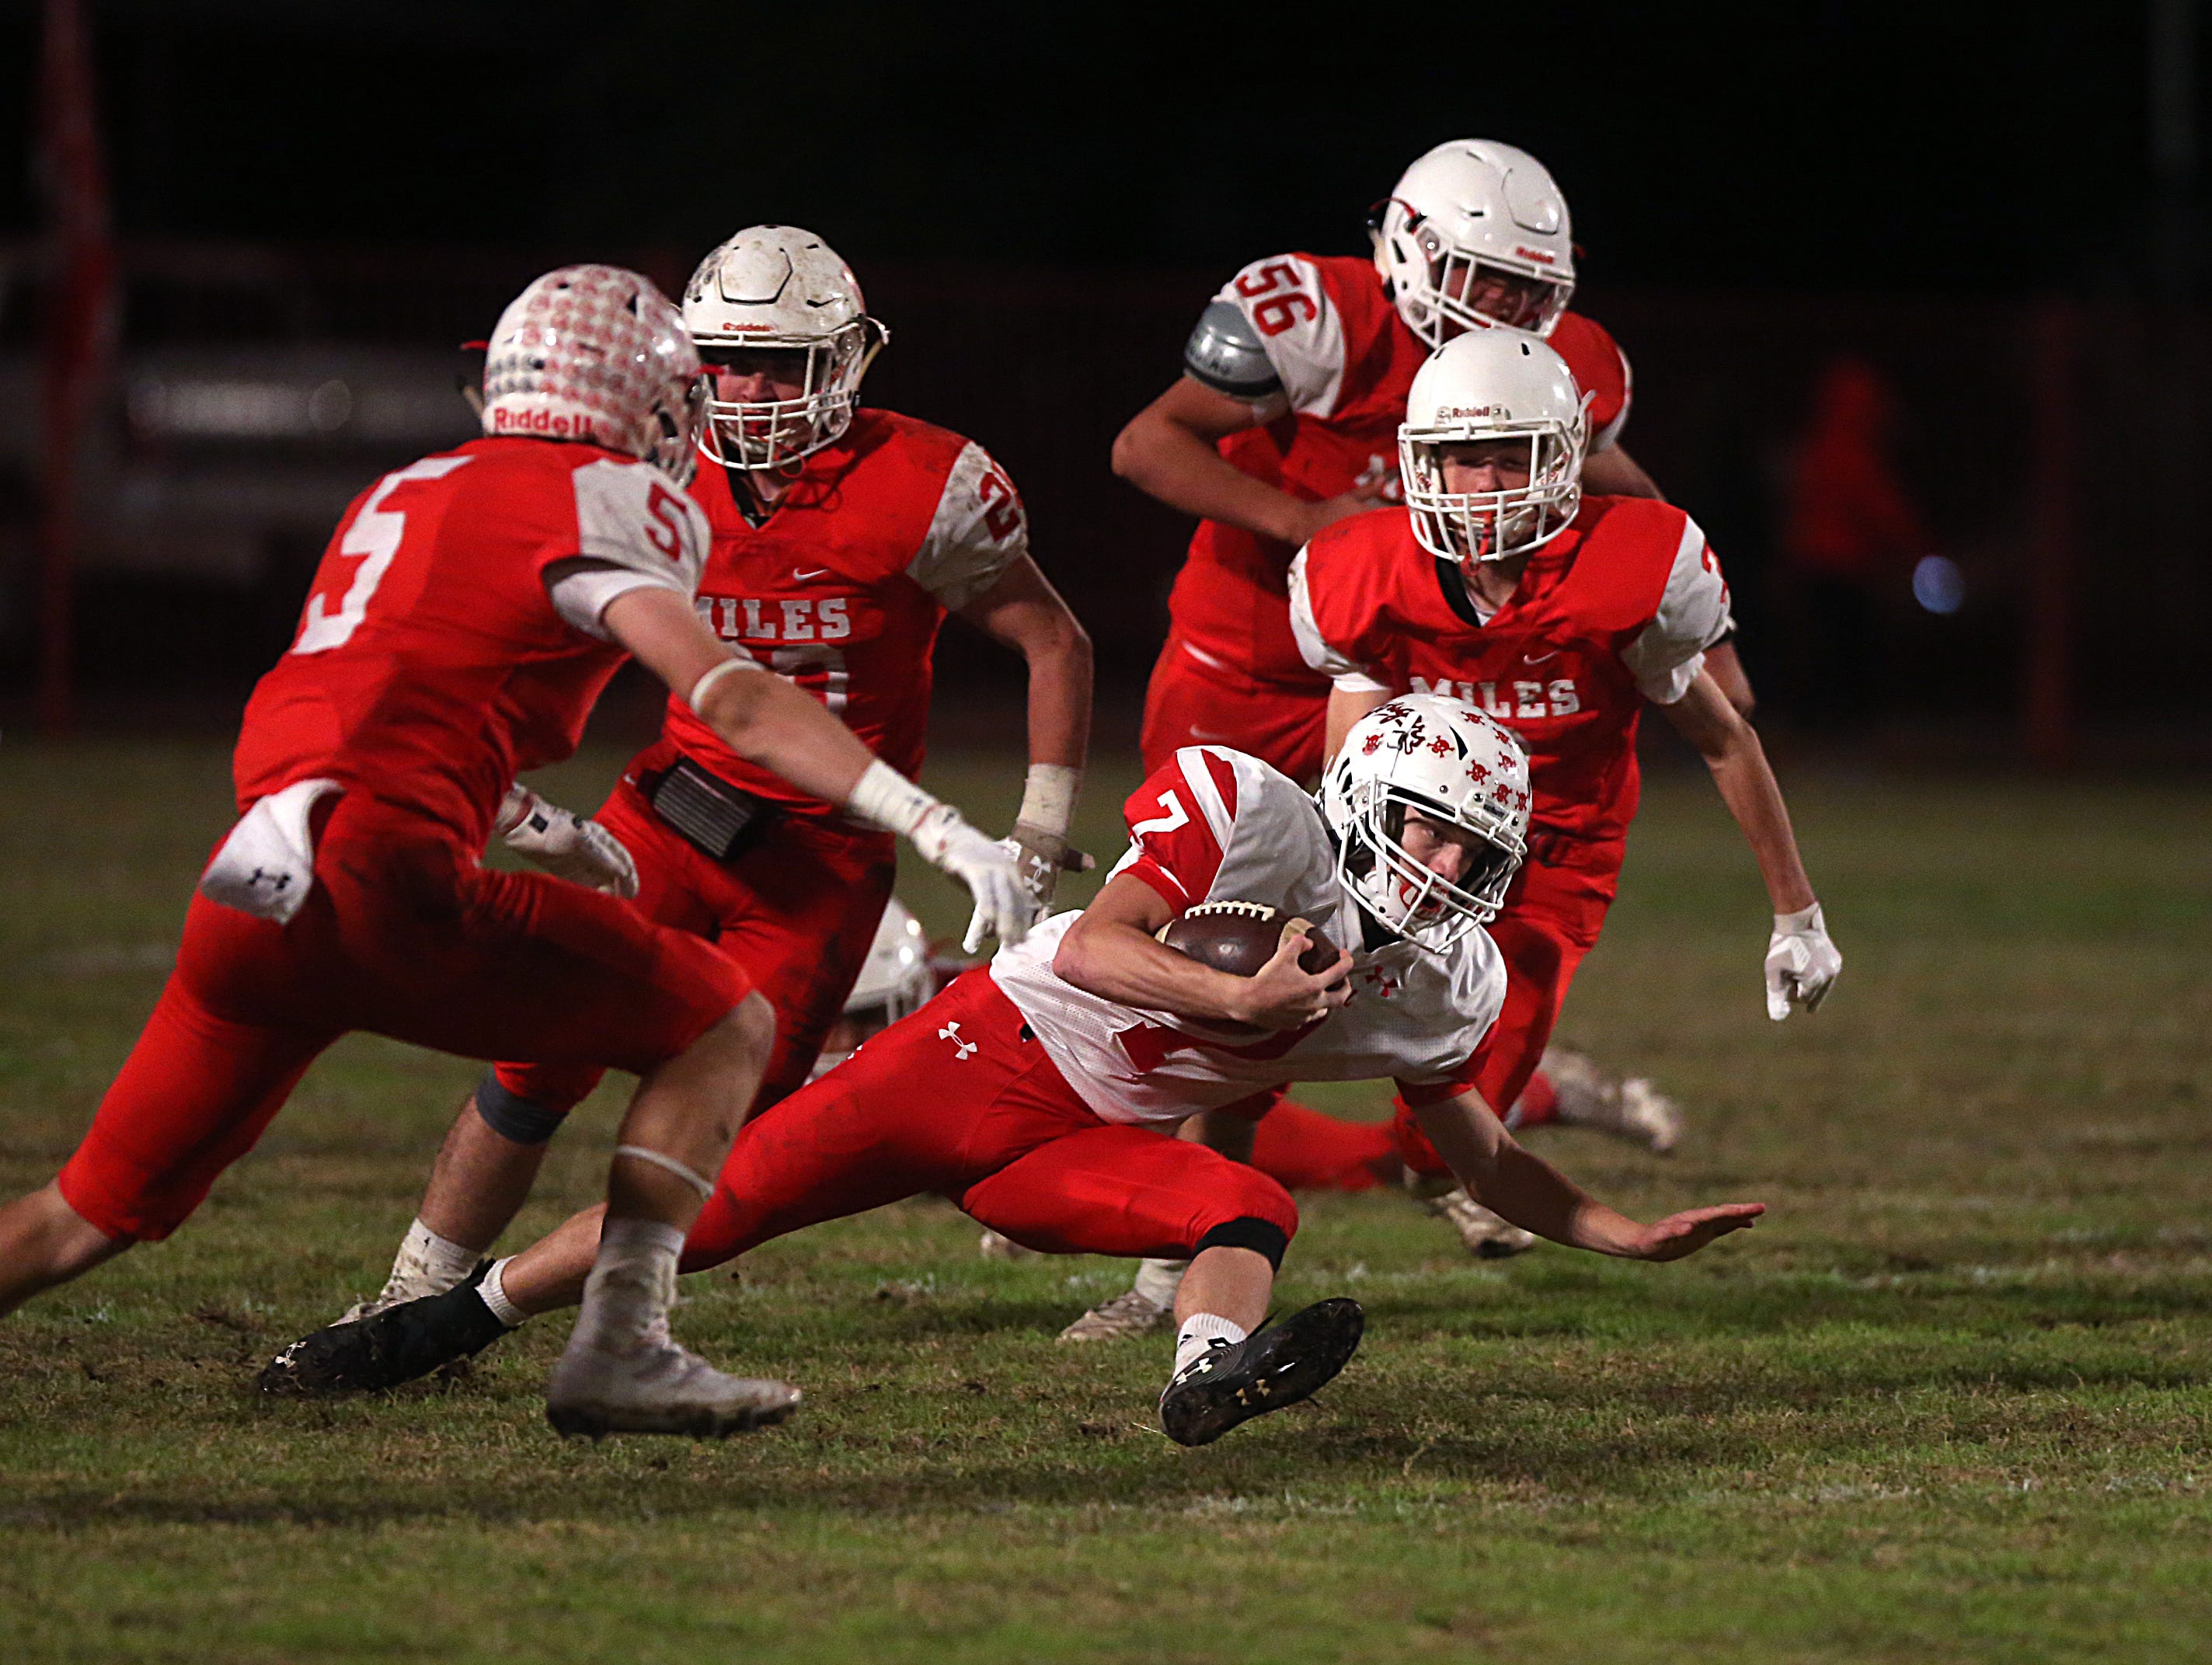 Christoval's David Fava (#7) slides to the ground while trying to outrun Miles' defense Friday, Nov. 2, 2018 during their game in Miles.